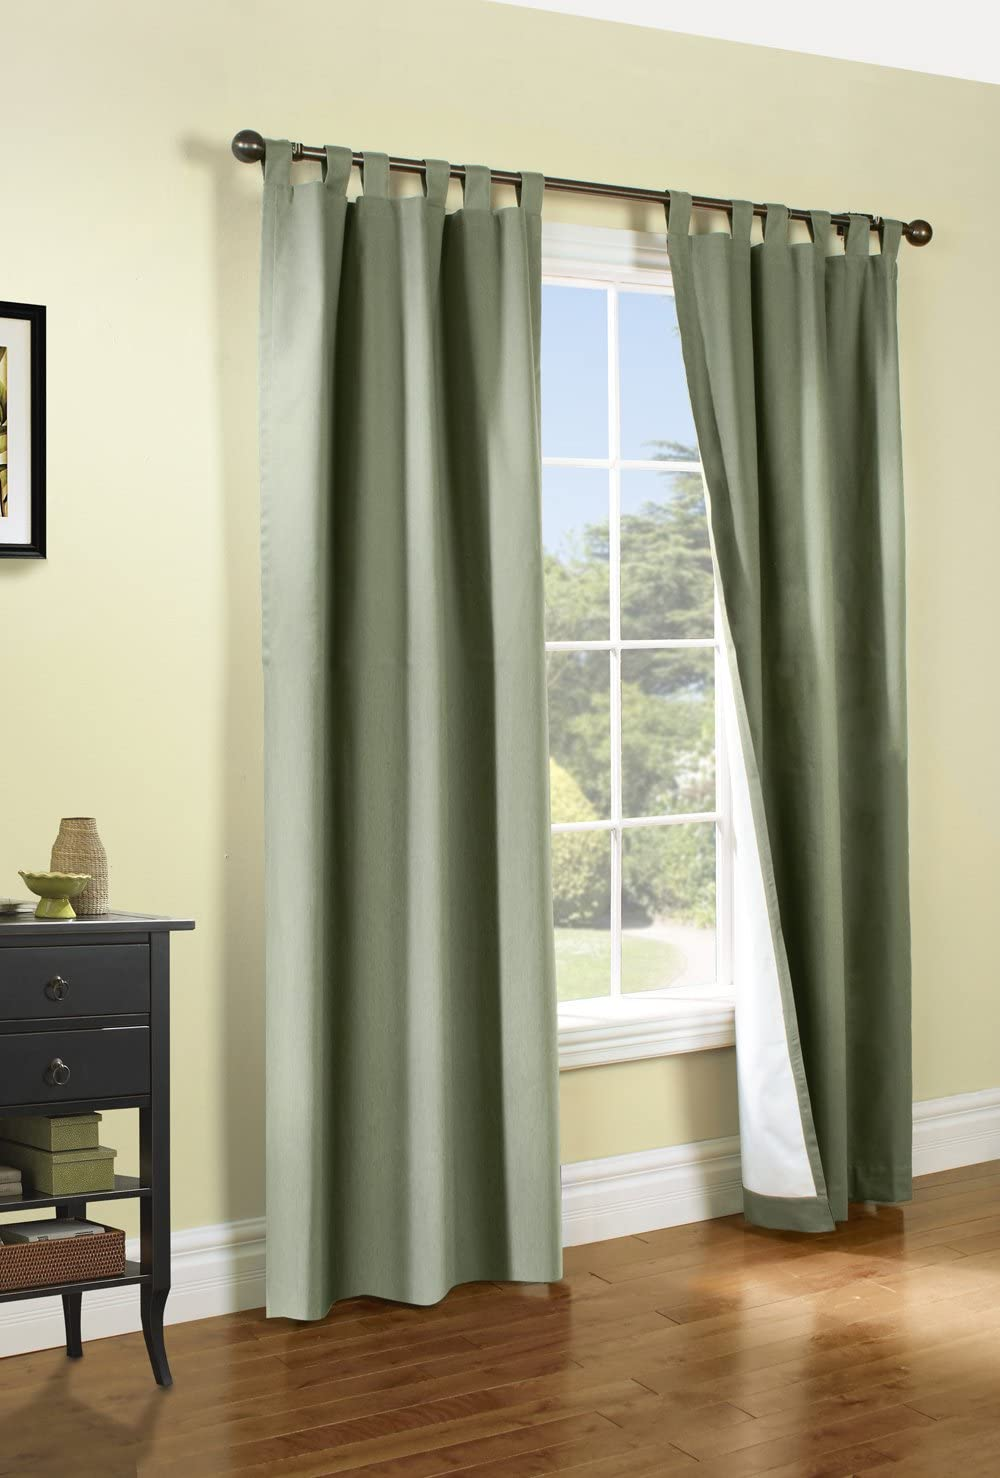 Thermalogic Weathermate Curtain 80×54 sage ThermalogicWeathermate Insulated tab Panel